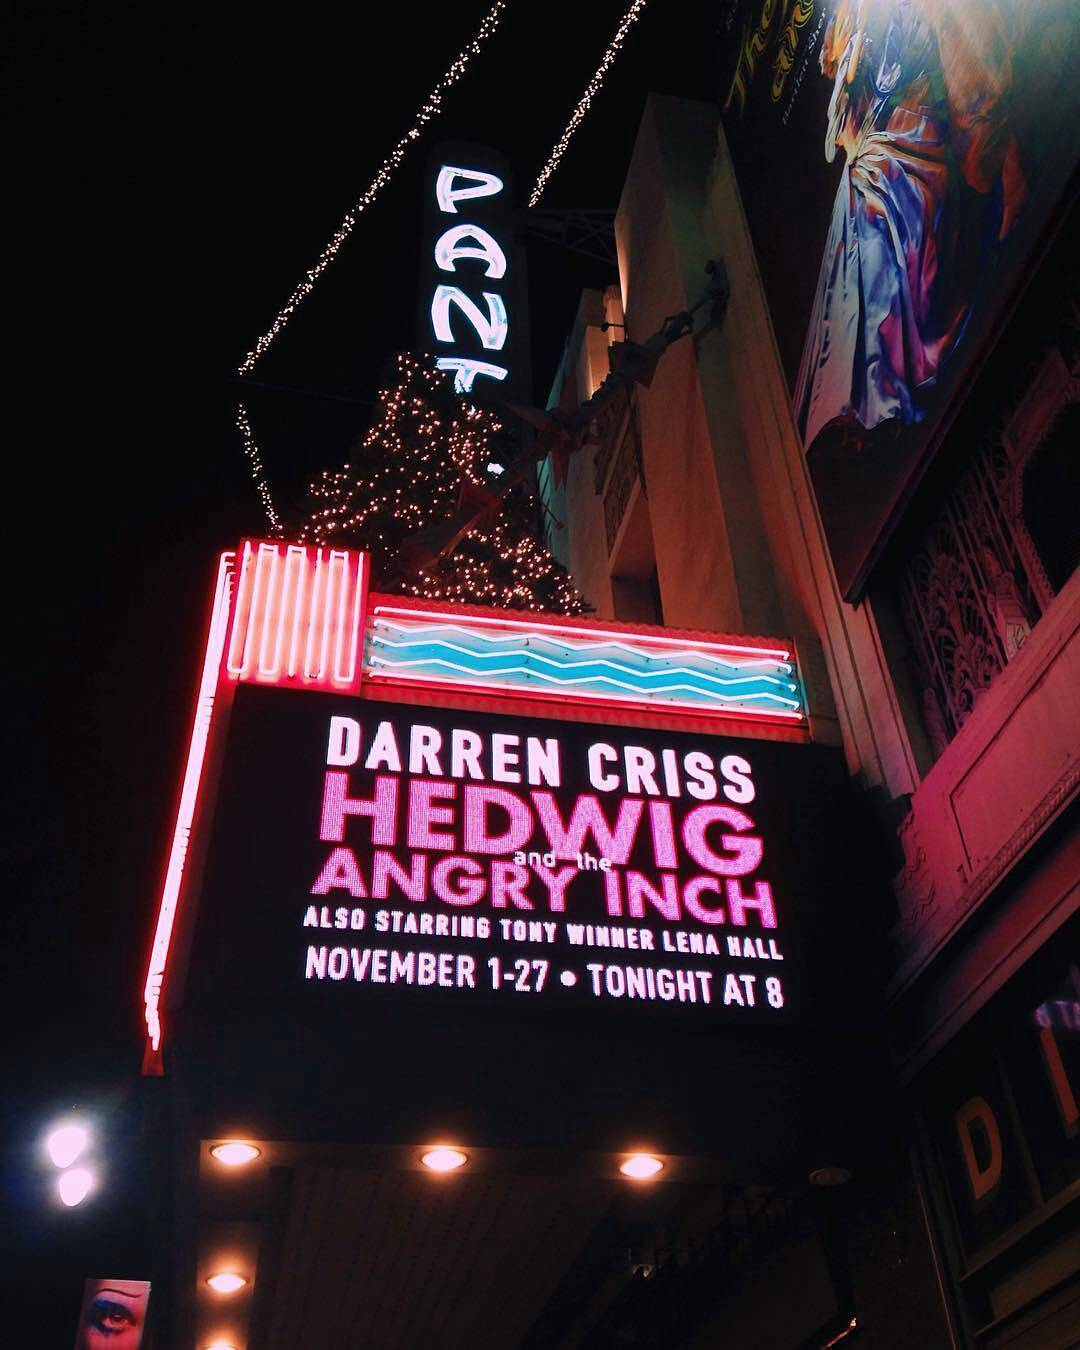 absolutlyfabulous - Fan Reviews, Media Reviews, and comments from members of the Media, about Darren in Hedwig and the Angry Inch--SF and L.A. Tour  - Page 5 Tumblr_ogexxp1bfU1ubd9qxo1_1280